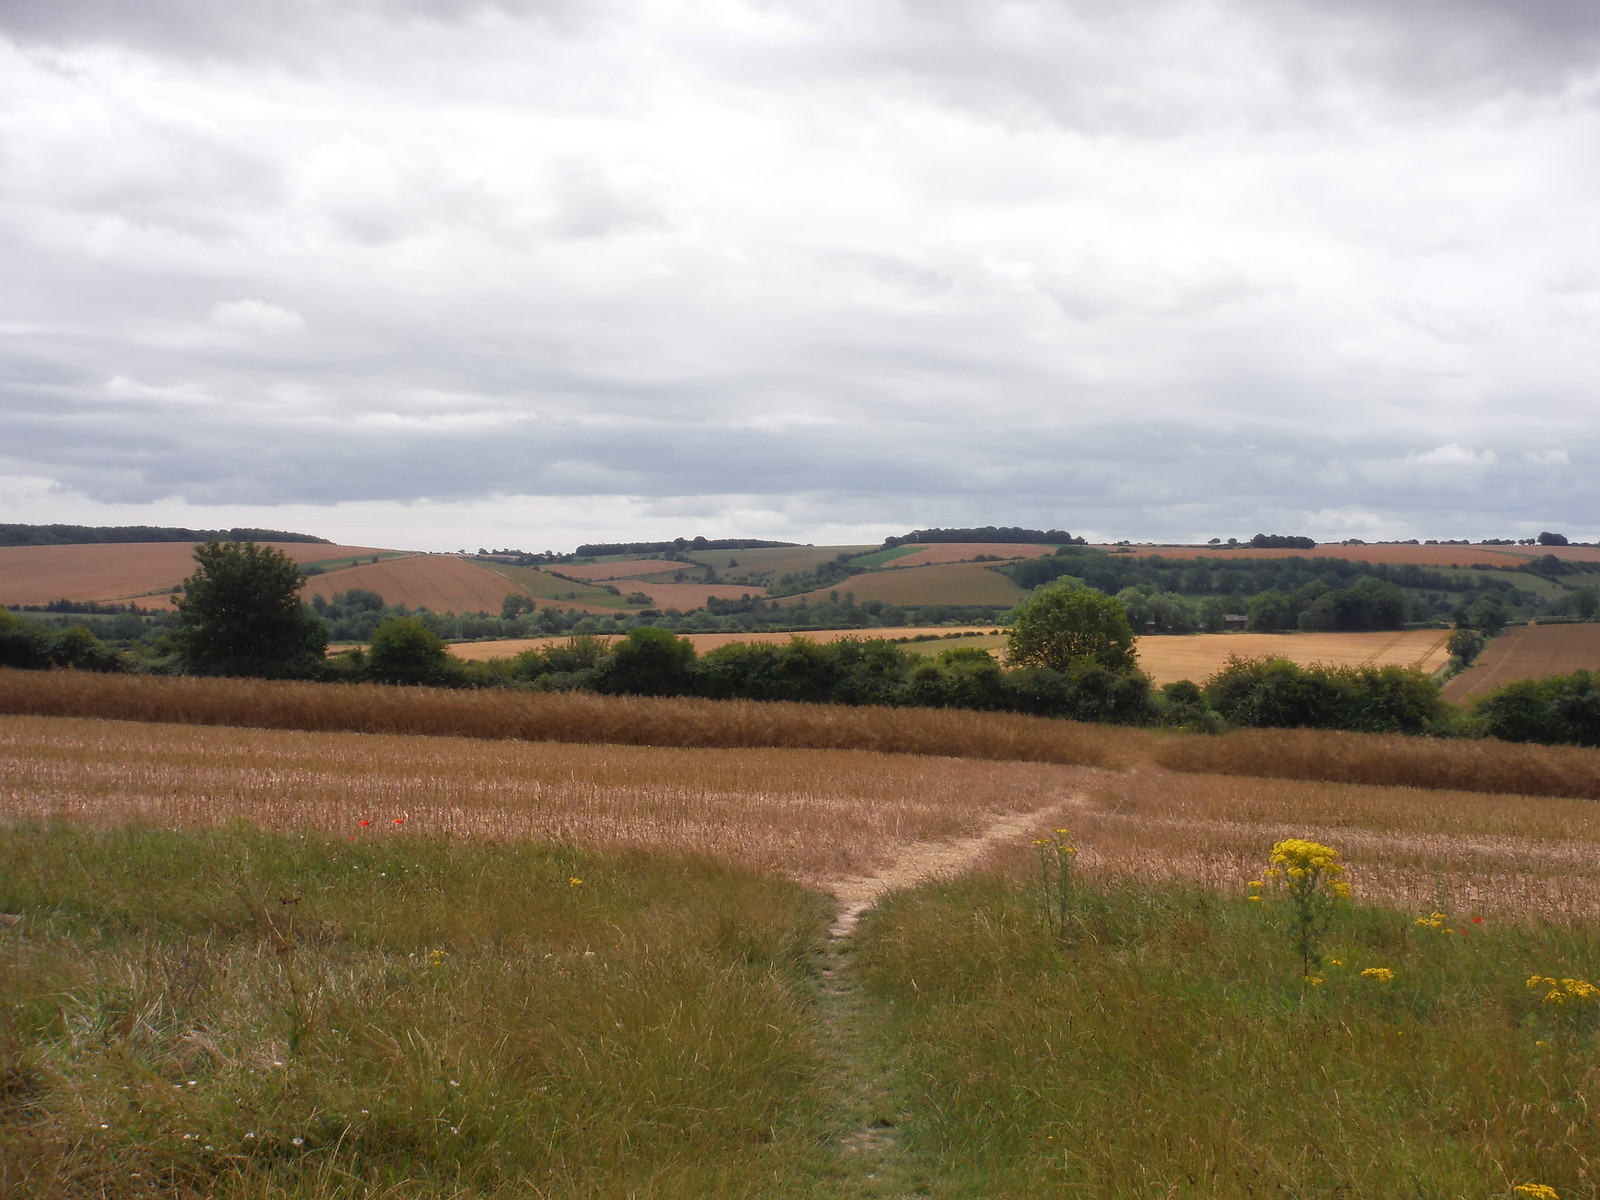 Emerging from Suburbia (views of the Chalke Valley and Downs behind) SWC Walk 254 Salisbury Circular